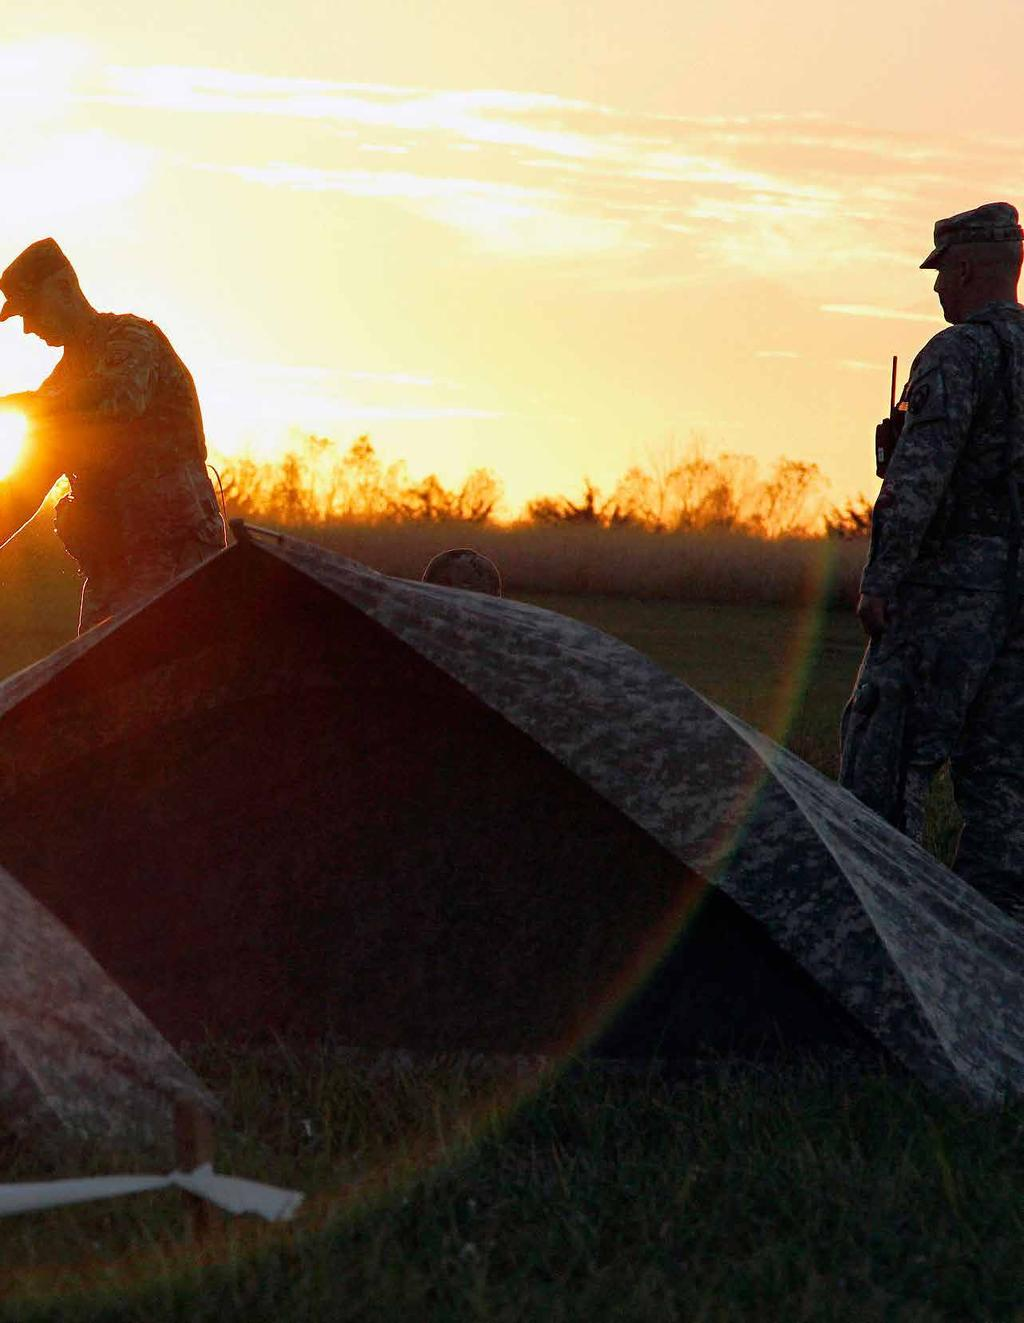 The Sustainment Training